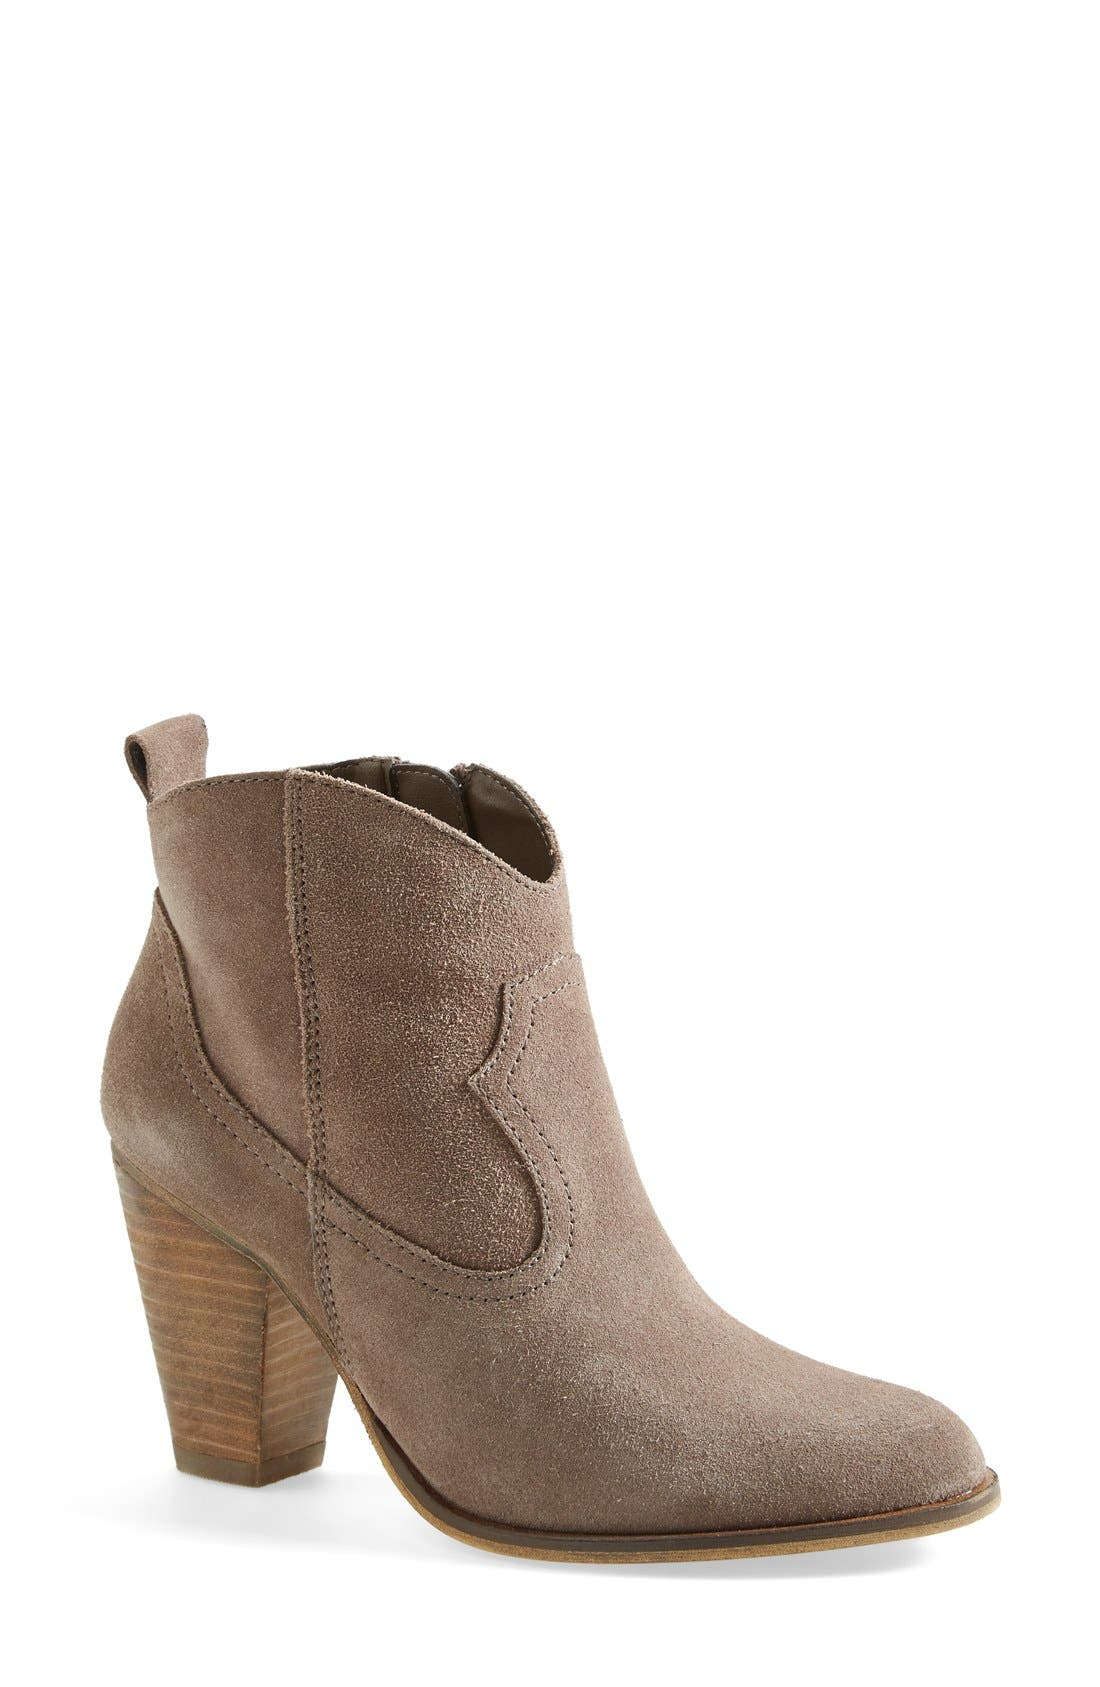 'Plover' Bootie,                             Main thumbnail 1, color,                             Taupe